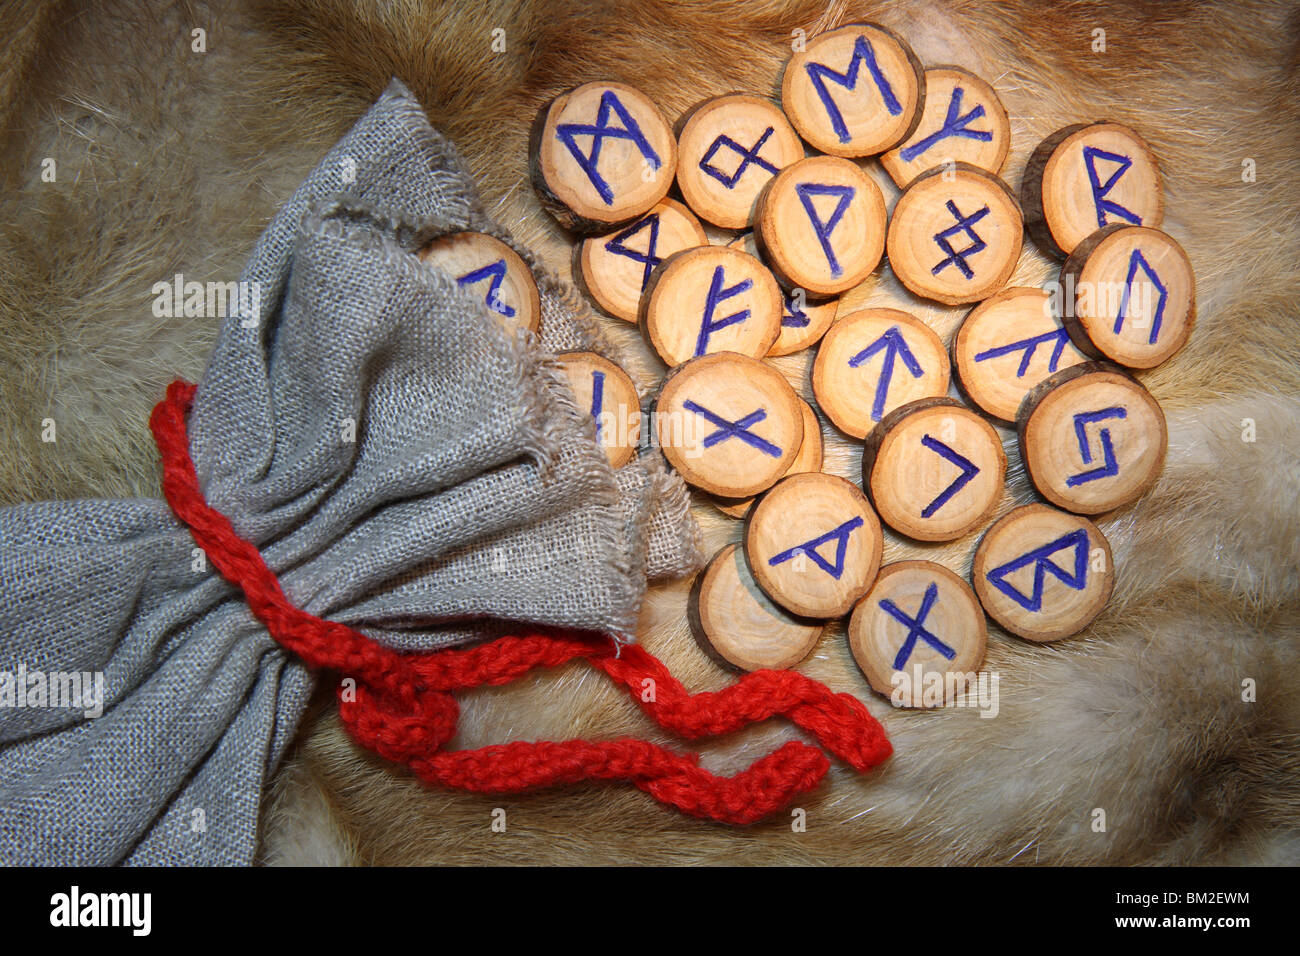 Runes with pouch on the fur - Stock Image